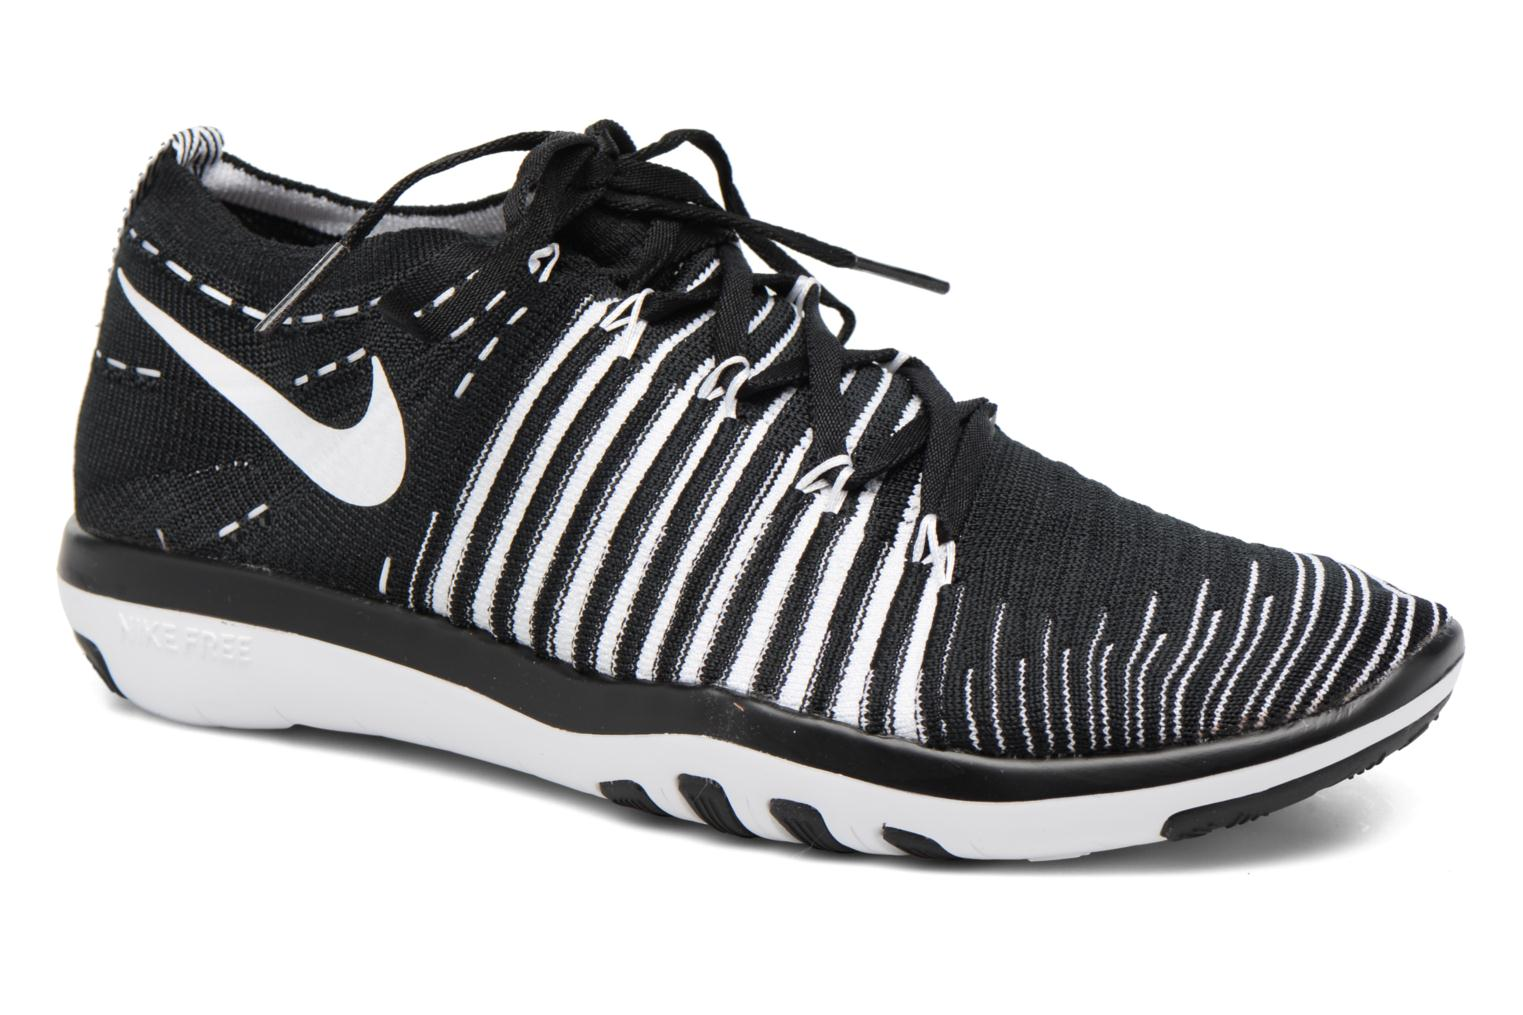 Wm Nike Free Transform Flyknit Black/white